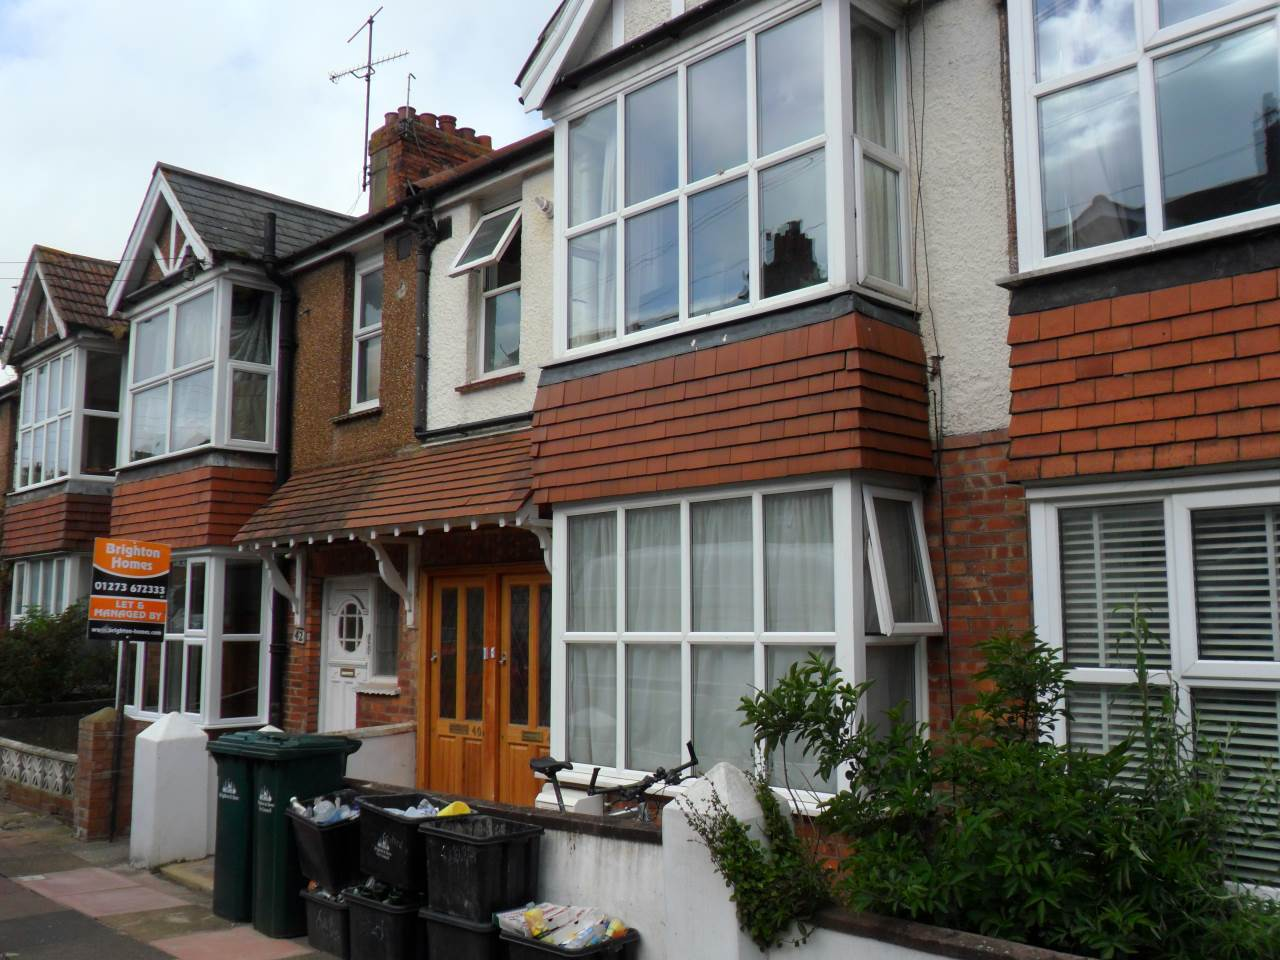 4 bed house to rent in Stanmer Park Road, Brighton, BN1